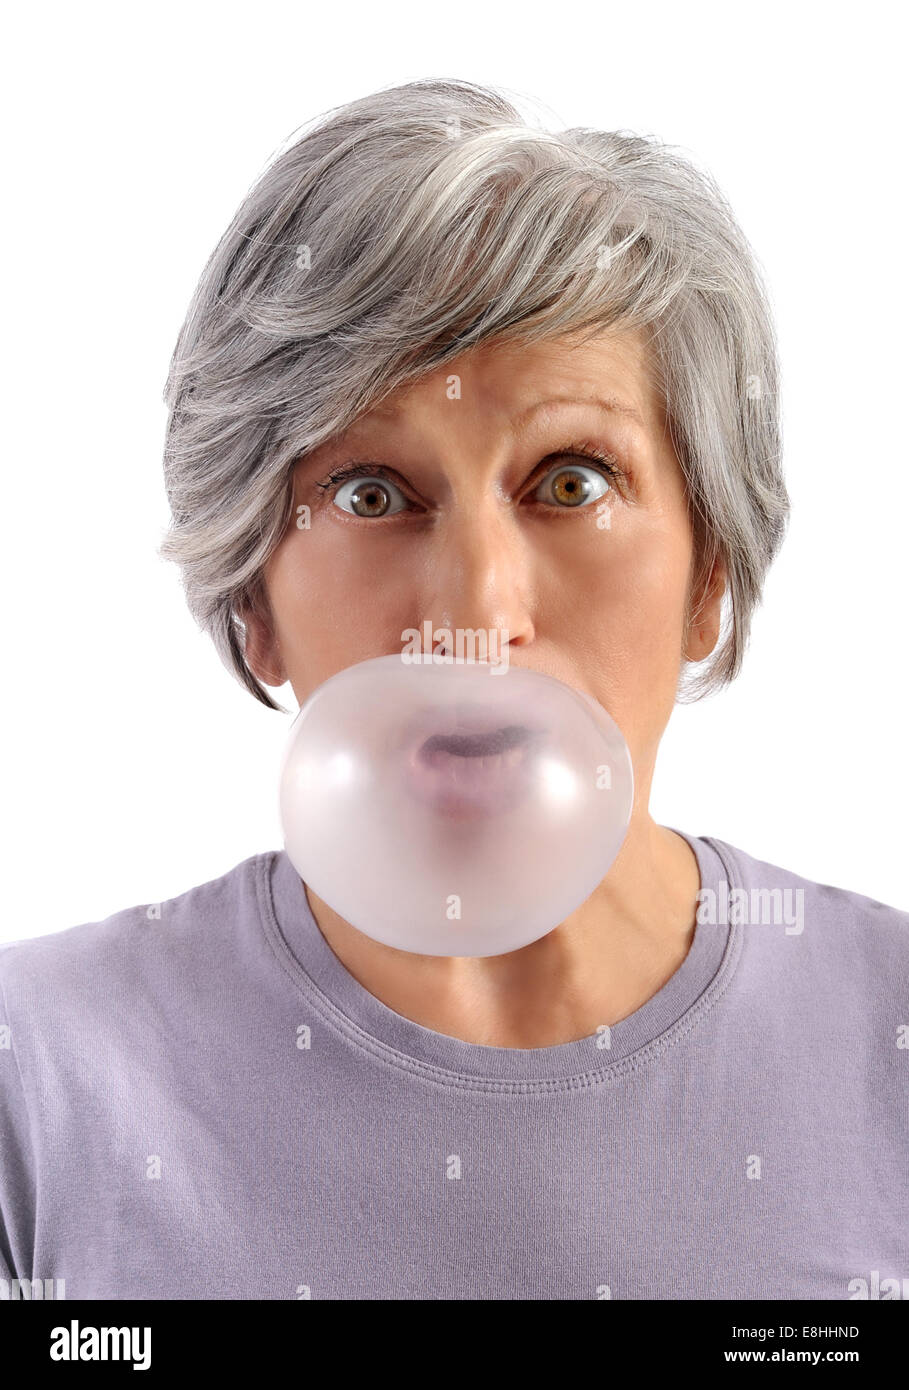 Adult Woman with Short Gray Hair Blowing Chewing Gum with Eyes Wide Open Looking at Camera. Isolated on White Background. - Stock Image